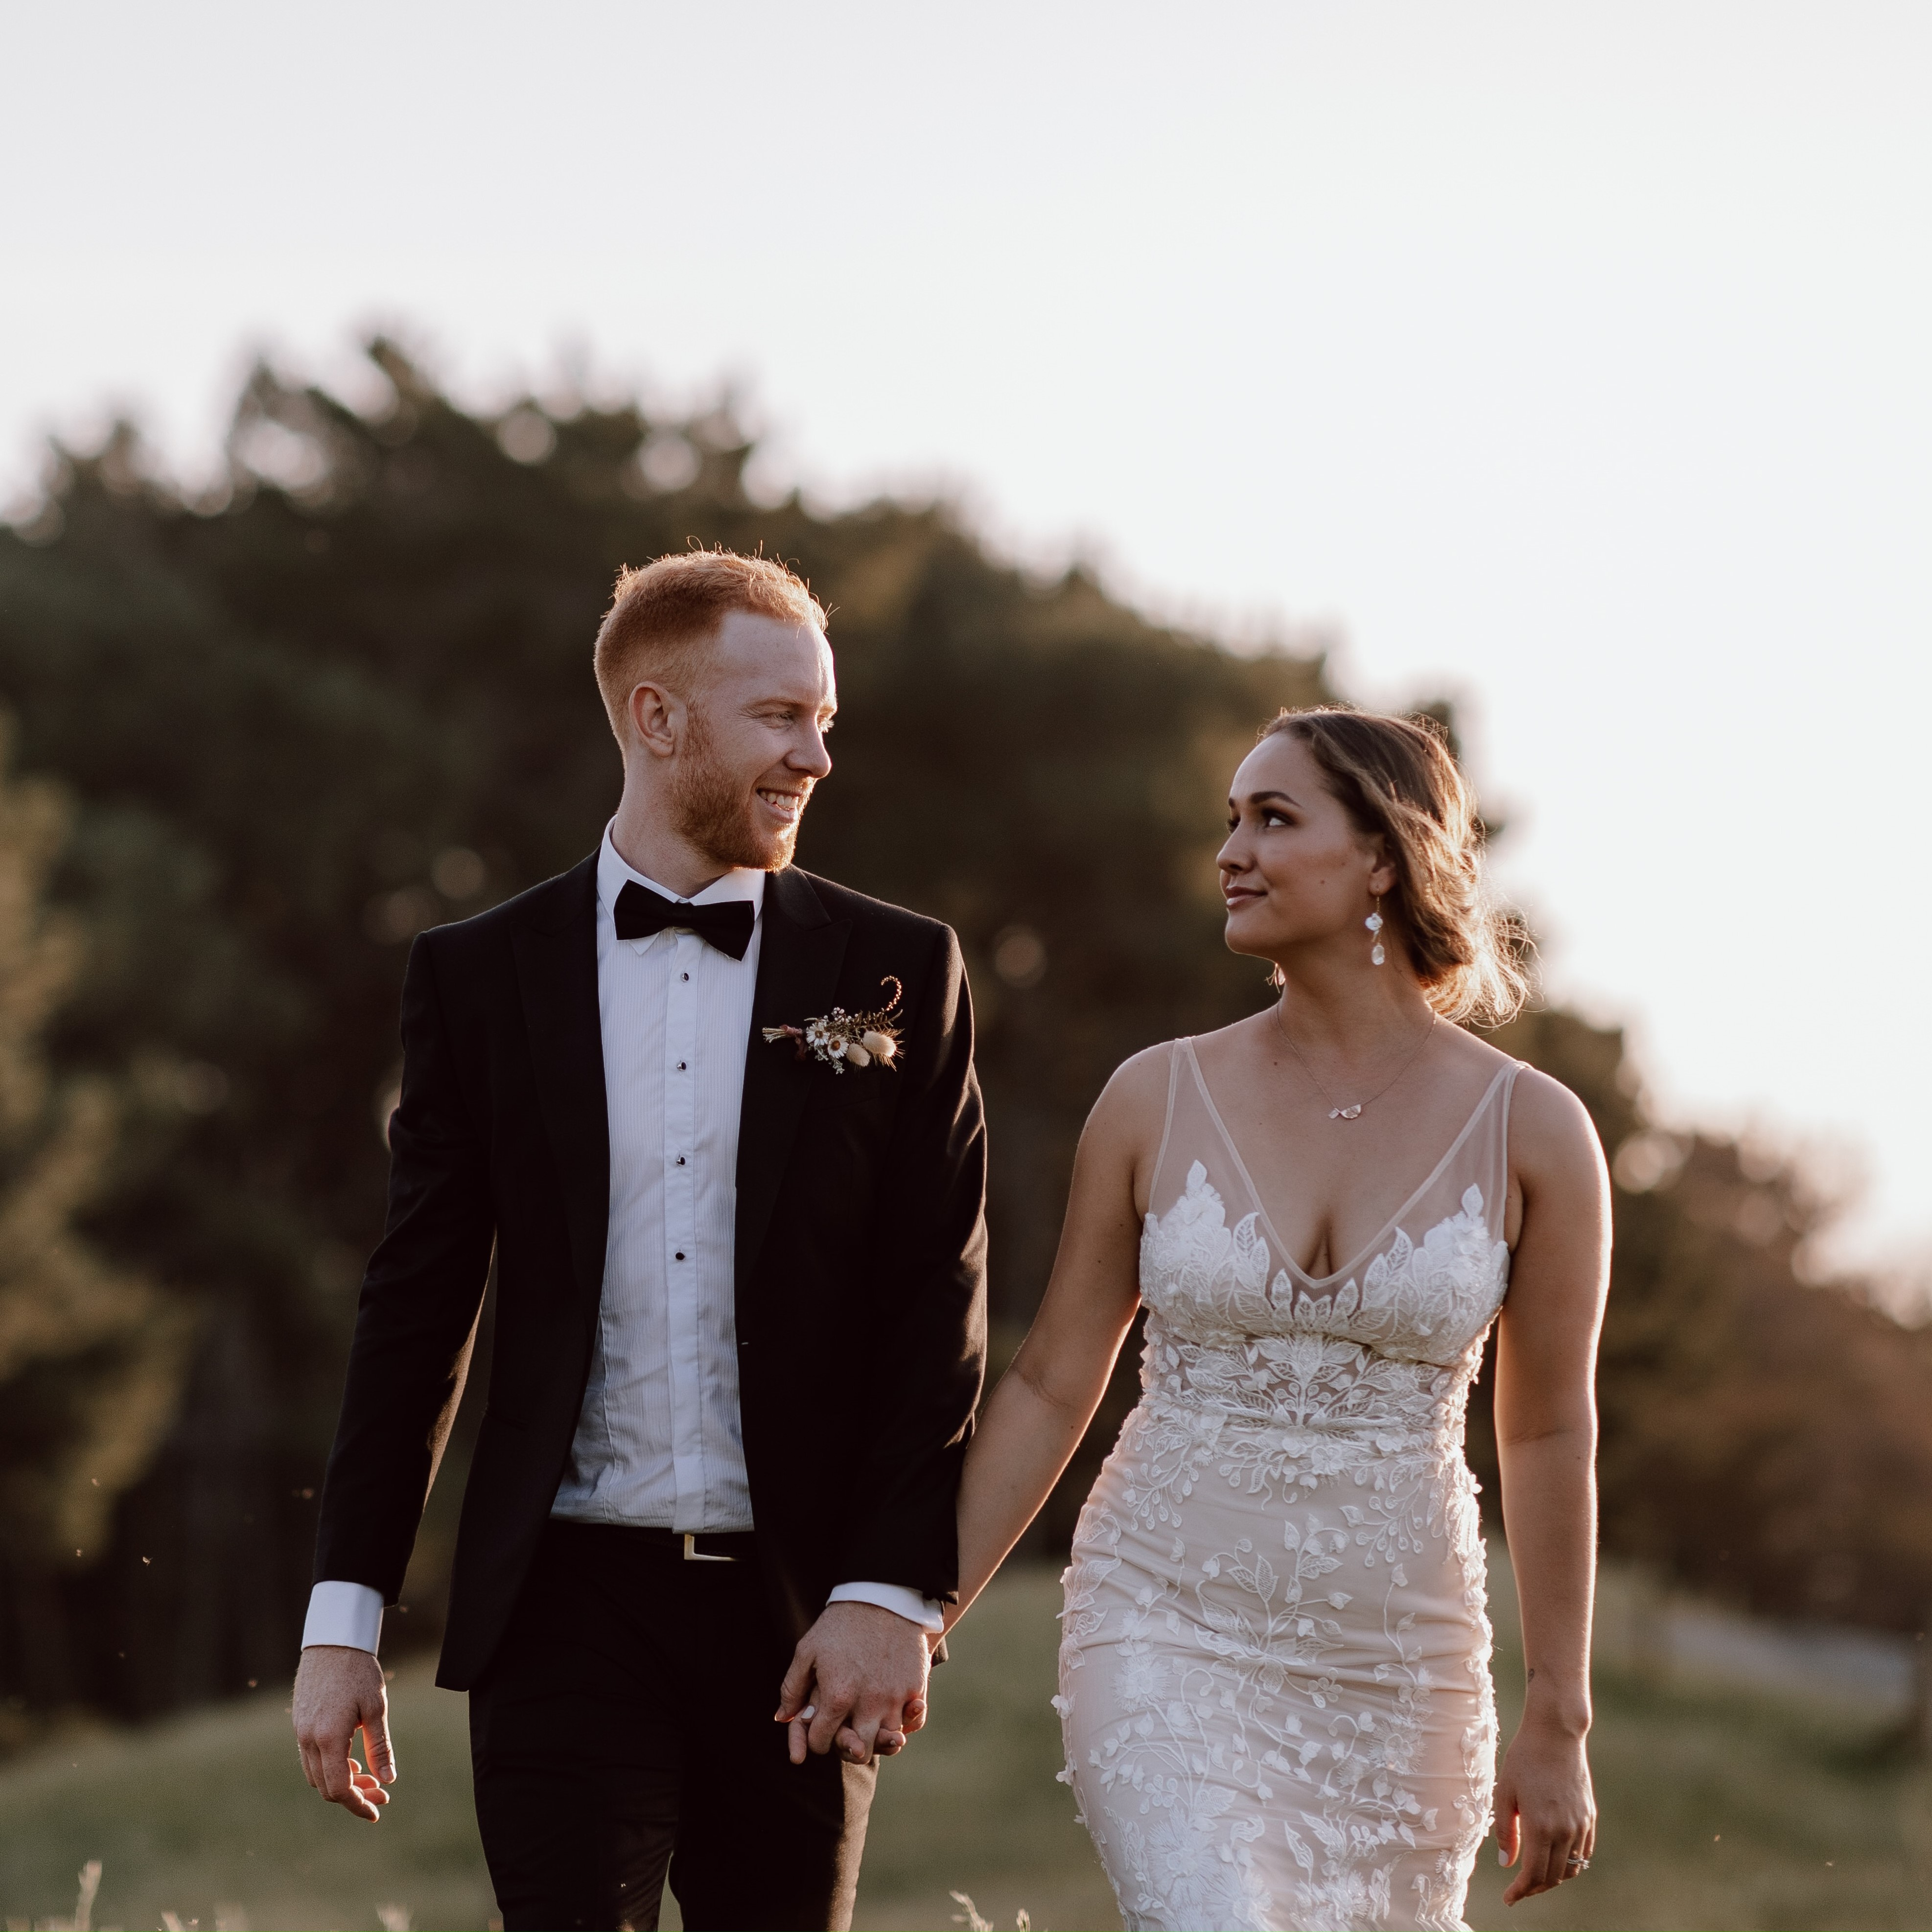 A bride and groom standing in a meadow holding hands in the sunset and the bride has her hair styled in a low messy bun